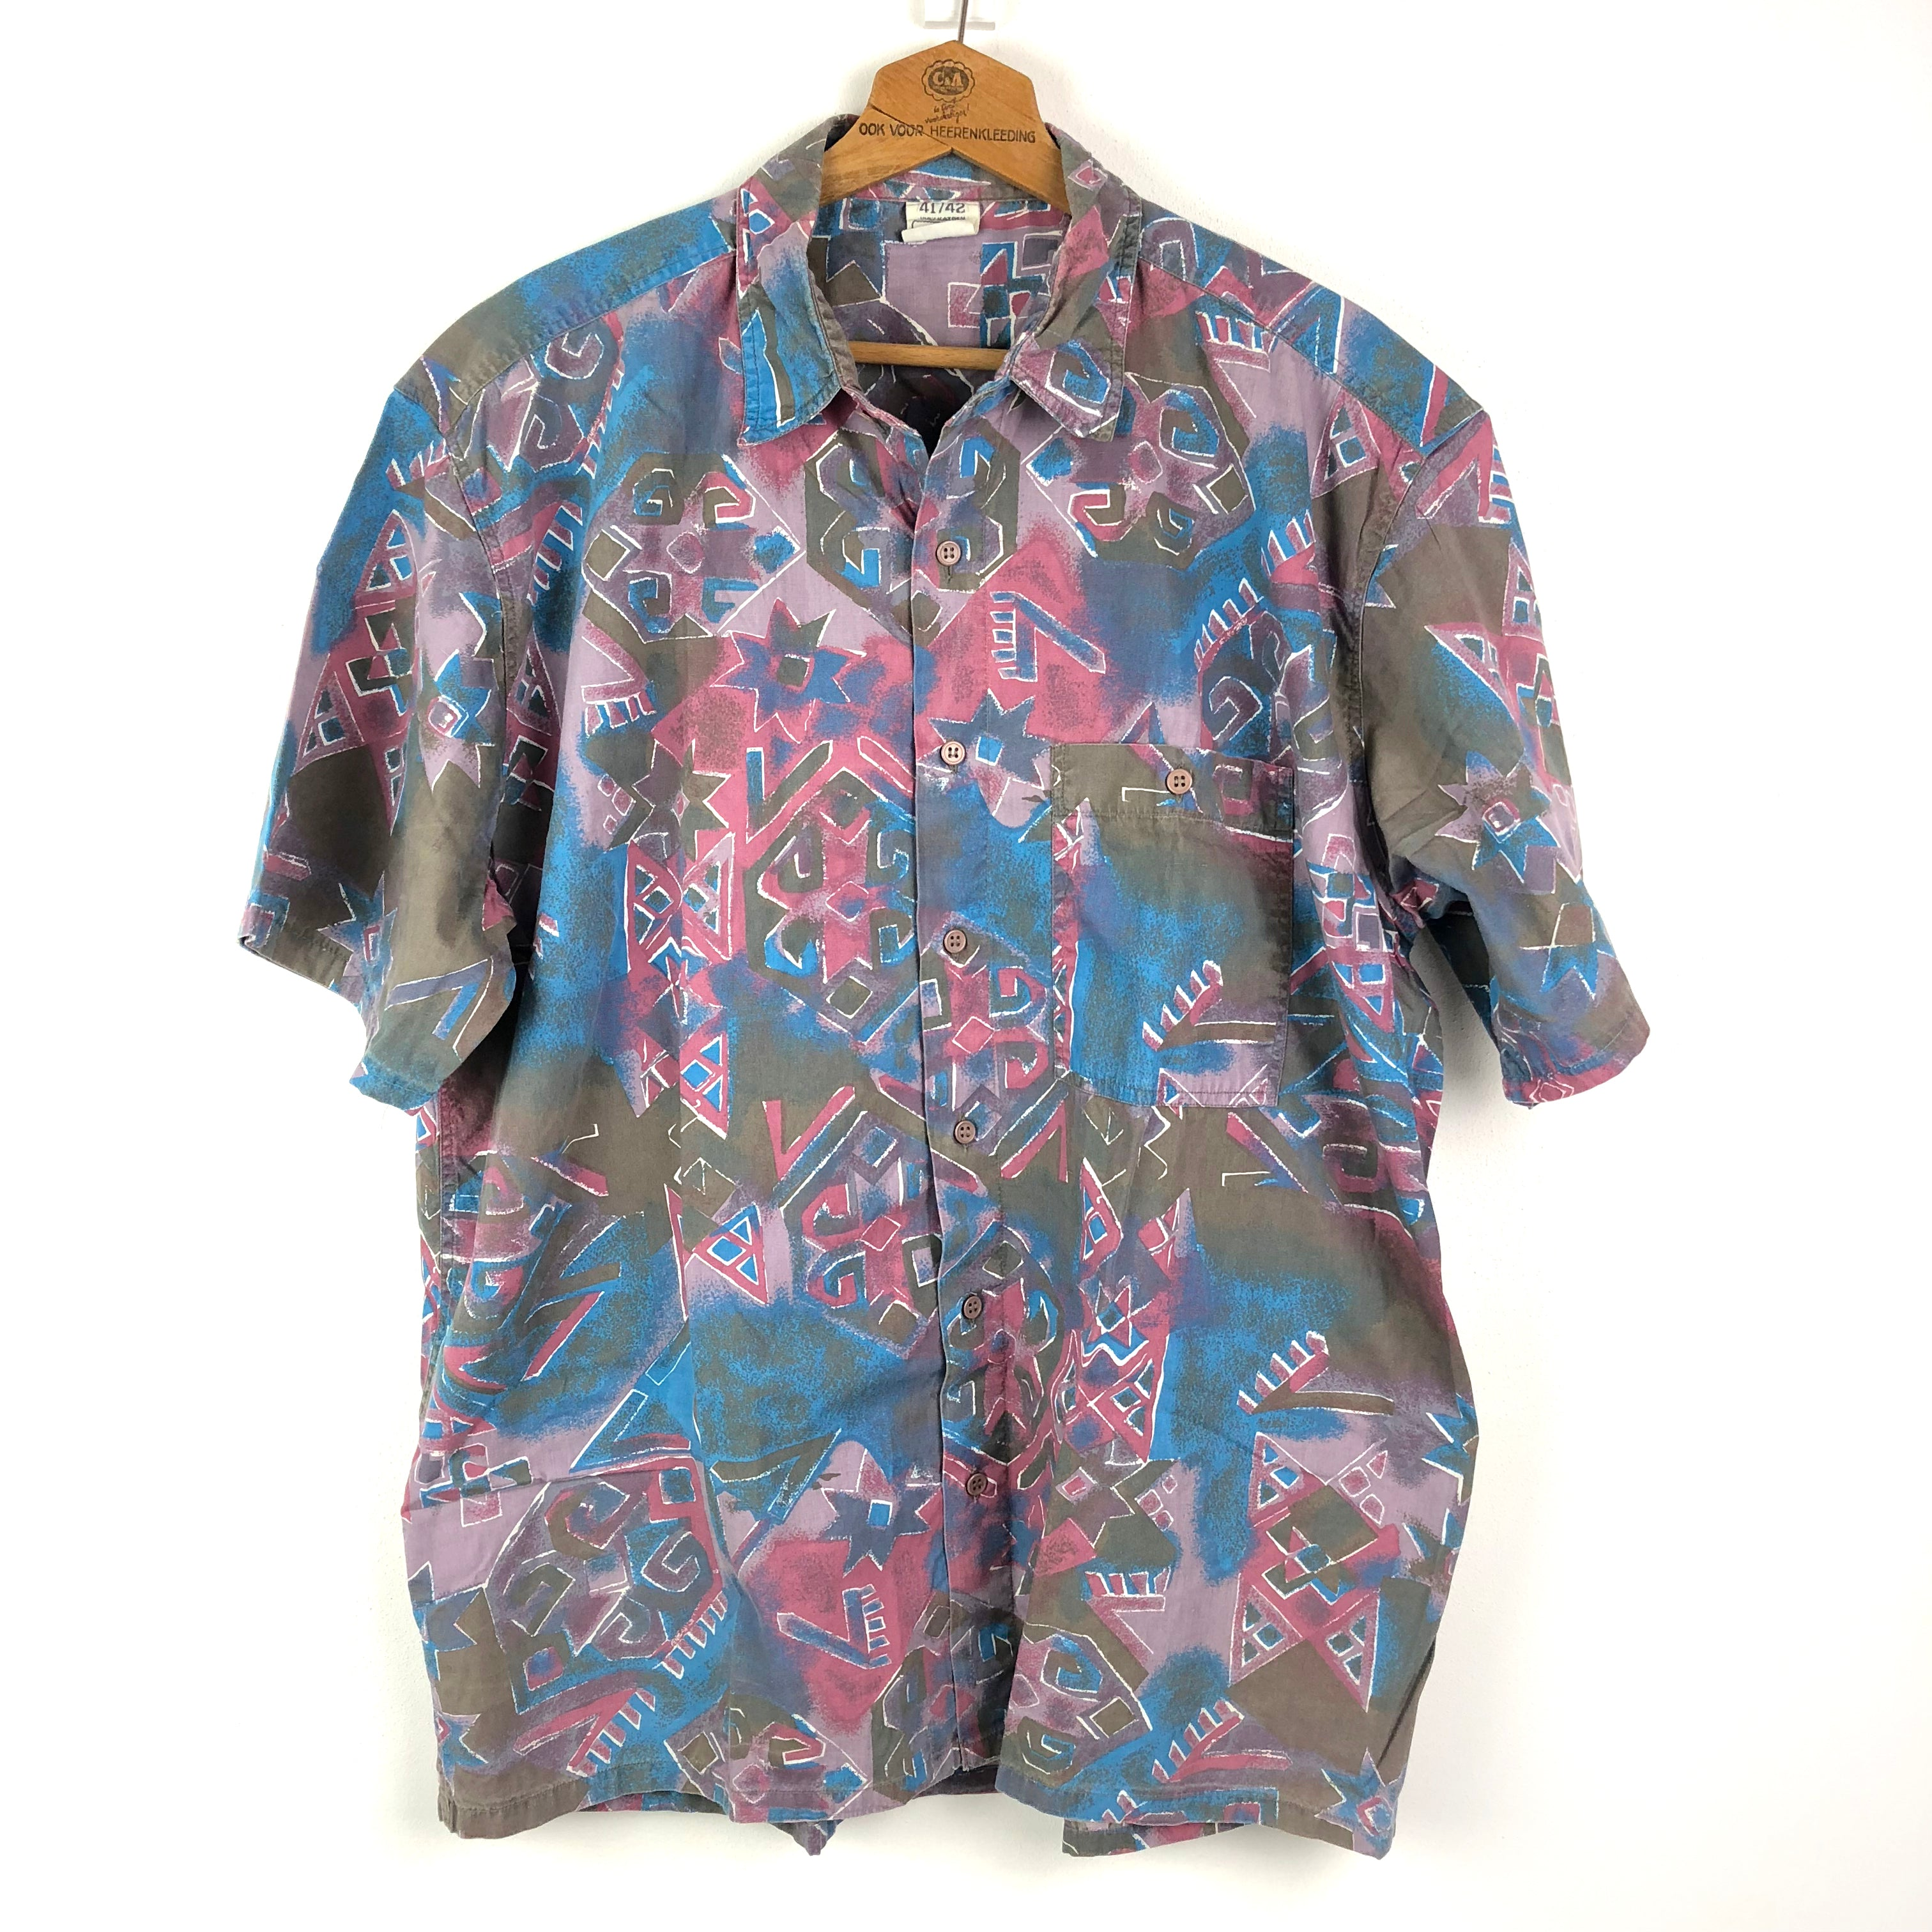 Blauwpaarse vintage oversized 90's herenblouse, mt 40